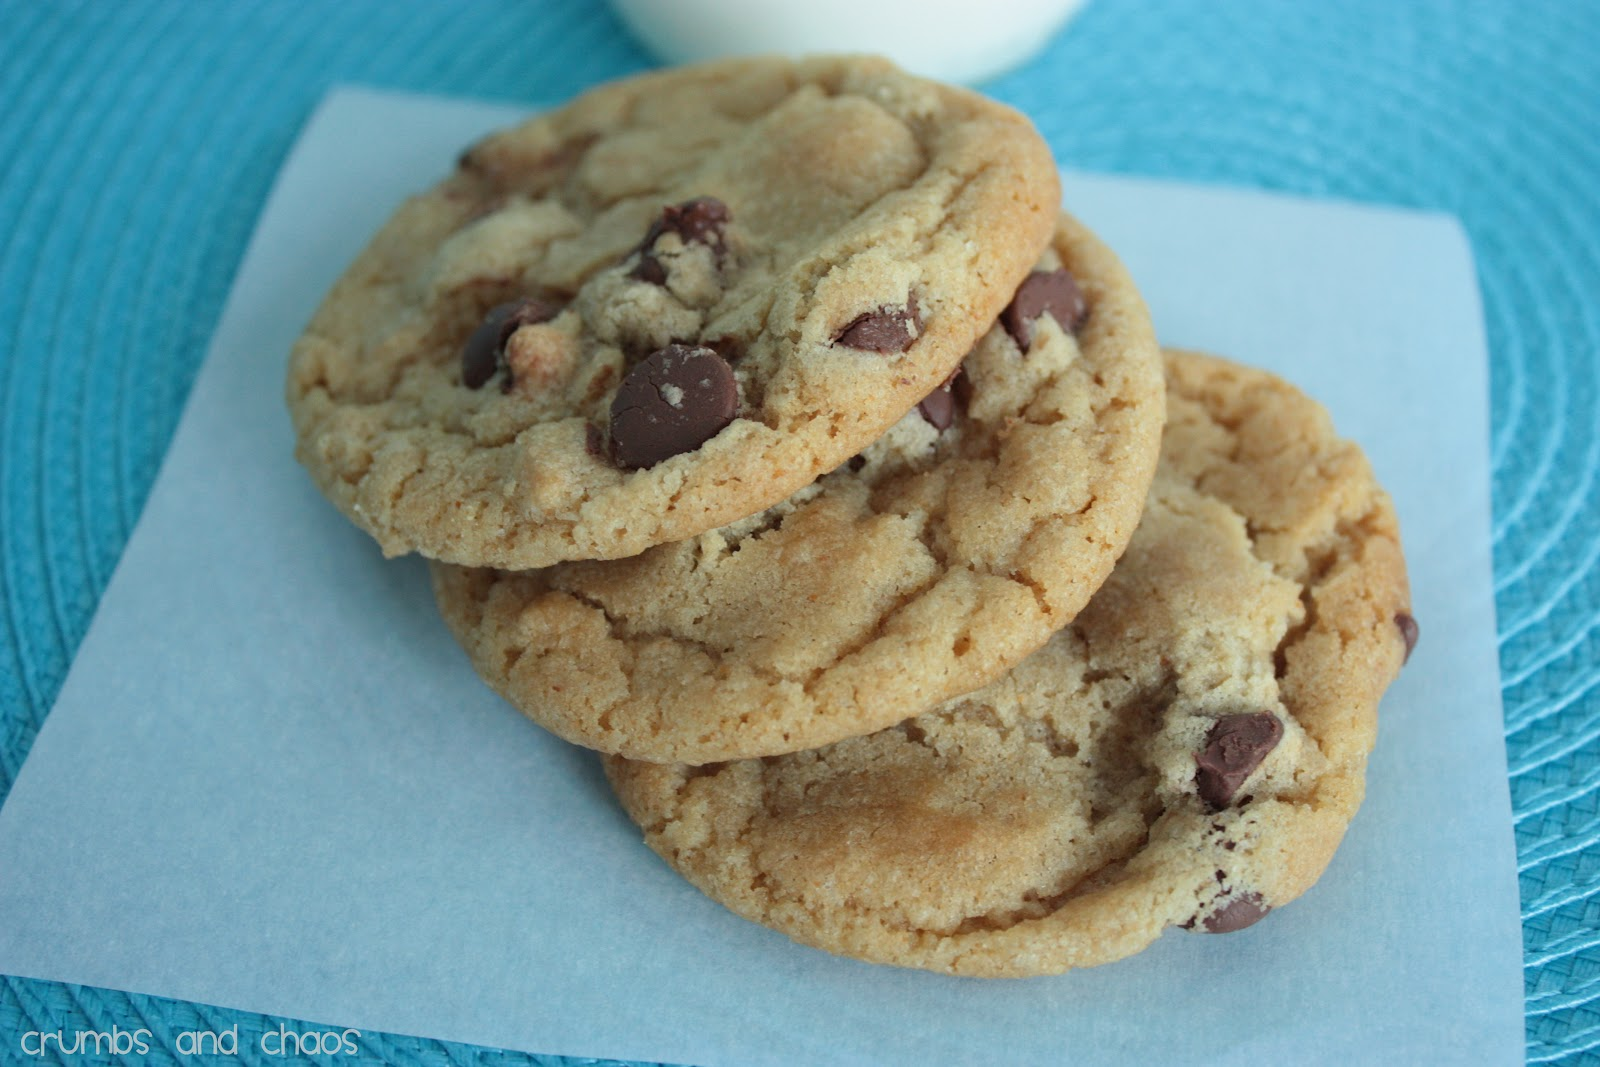 Brown Butter Chocolate Chip Cookies - Crumbs and Chaos